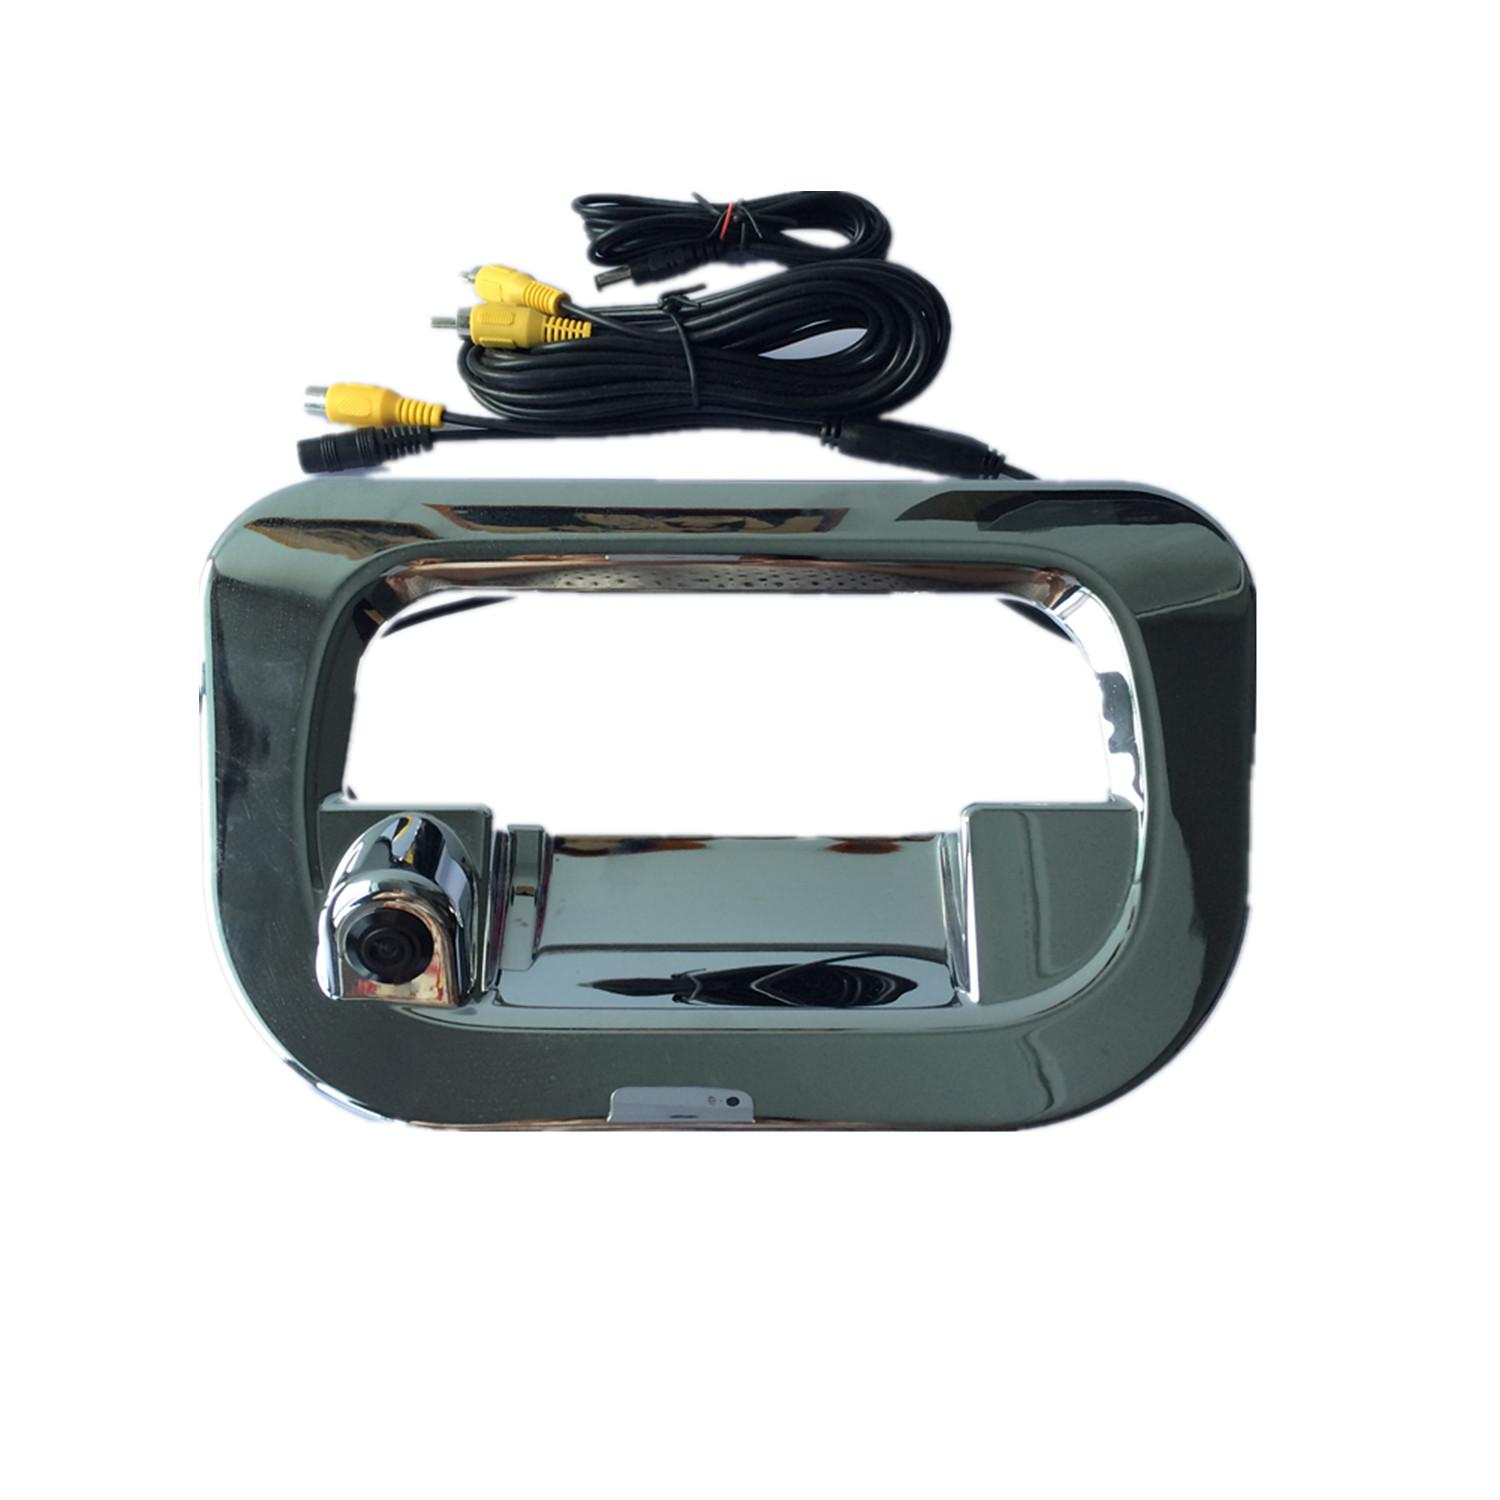 hight resolution of 2018 car wide angle tailgate cover rear view reverse camera for toyota hilux vigo year of